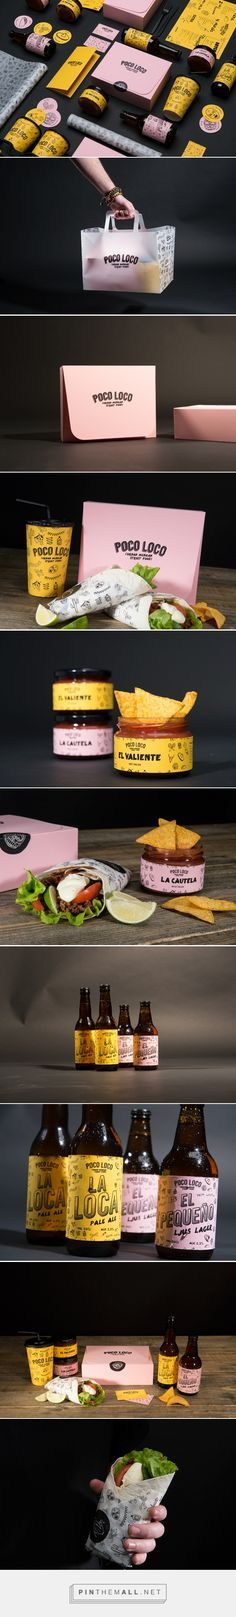 Branding, graphic design and packaging for Poco Loco on Behance curated by Packaging Diva PD. Mexican restaurant located in Karlstad, Sweden with a new identity and products and a new takeaway concept.